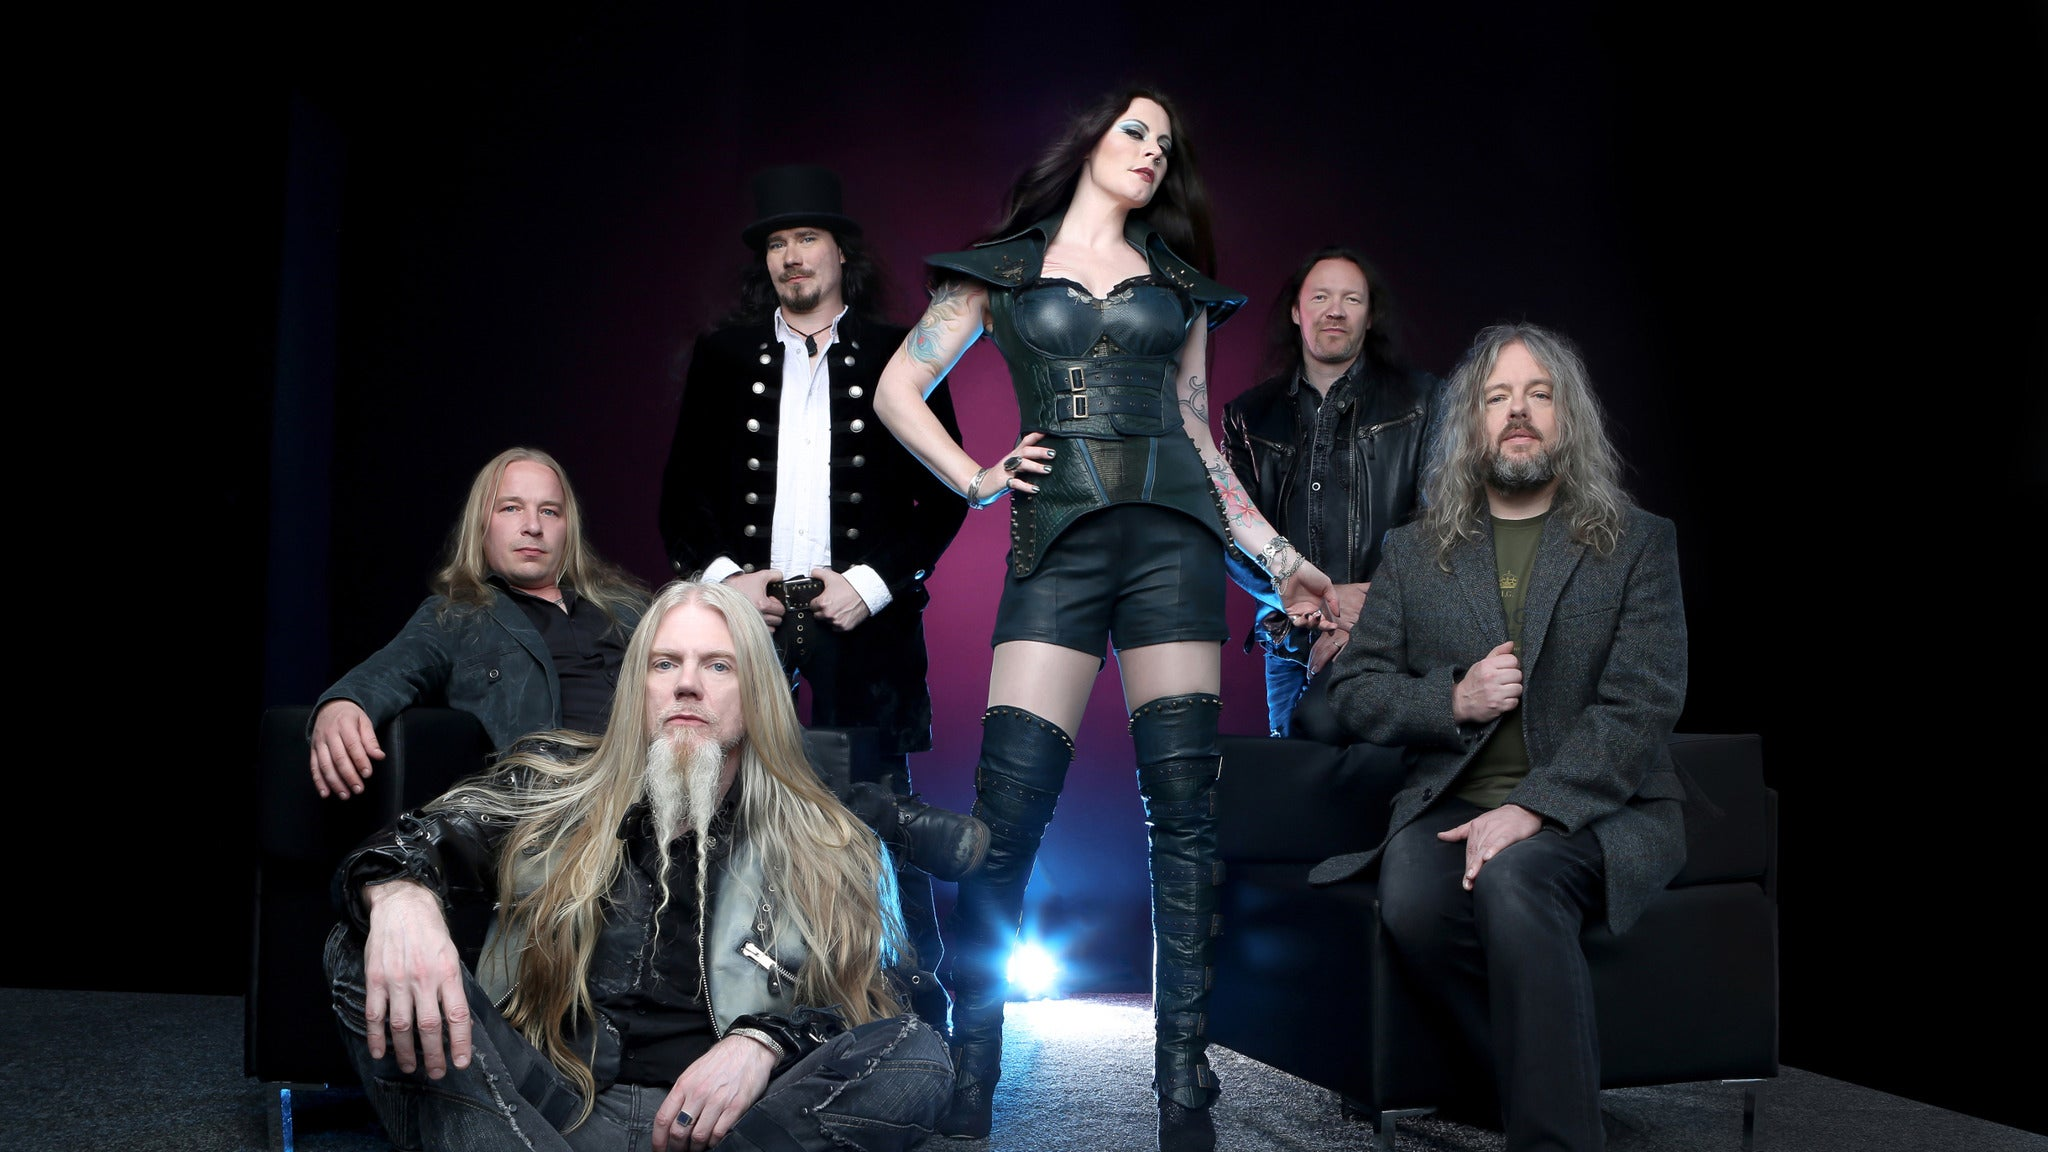 Nightwish at Knitting Factory Concert House - Spokane